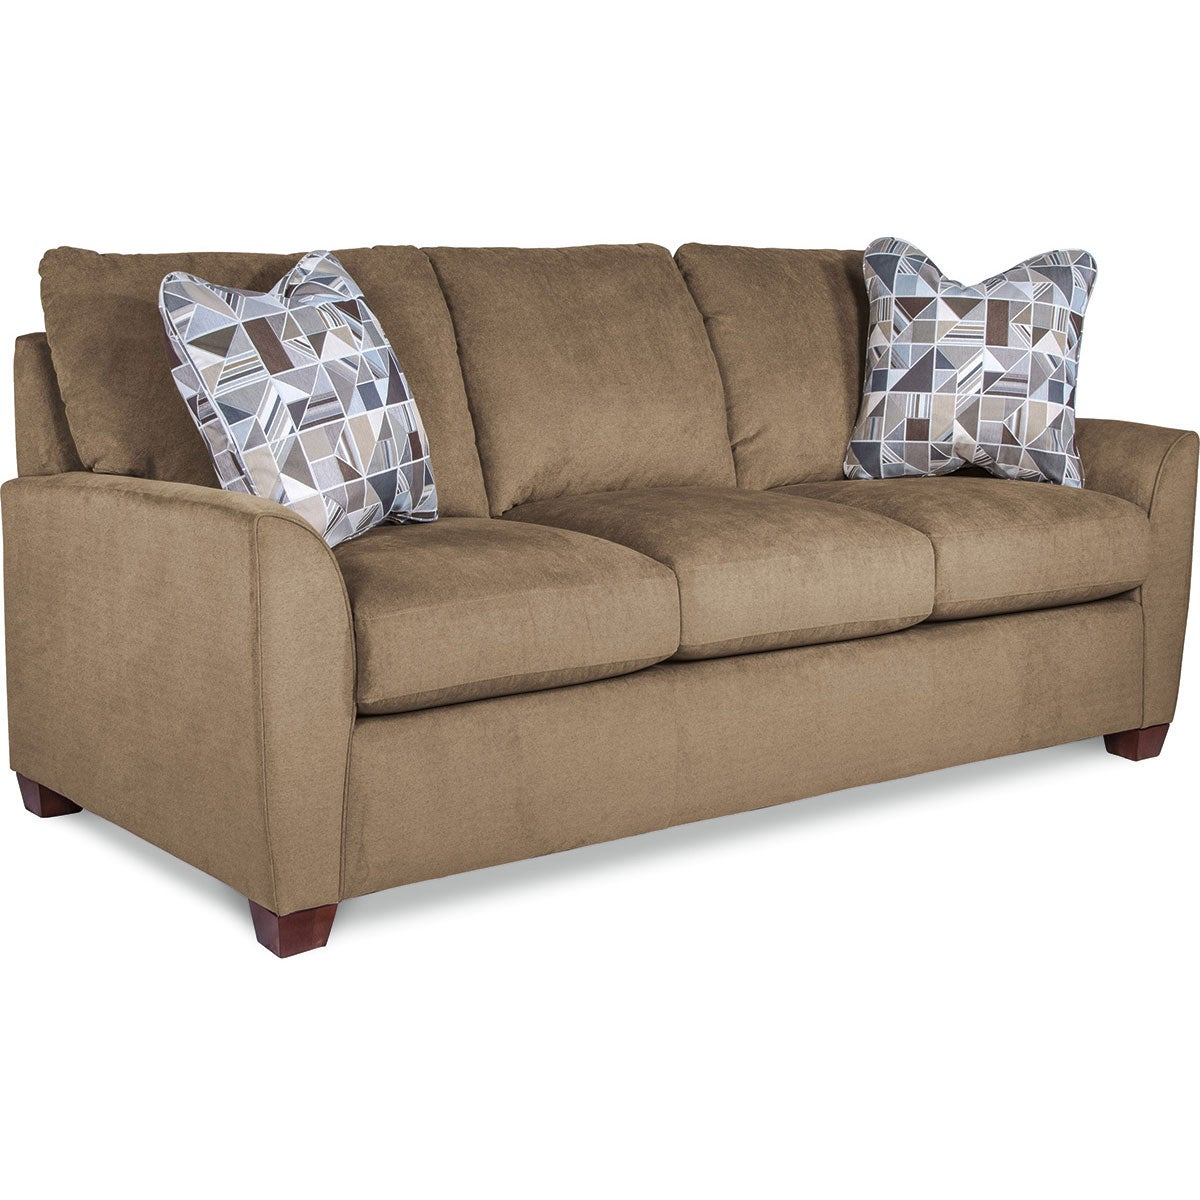 Amy premier sofa for Divan and settee